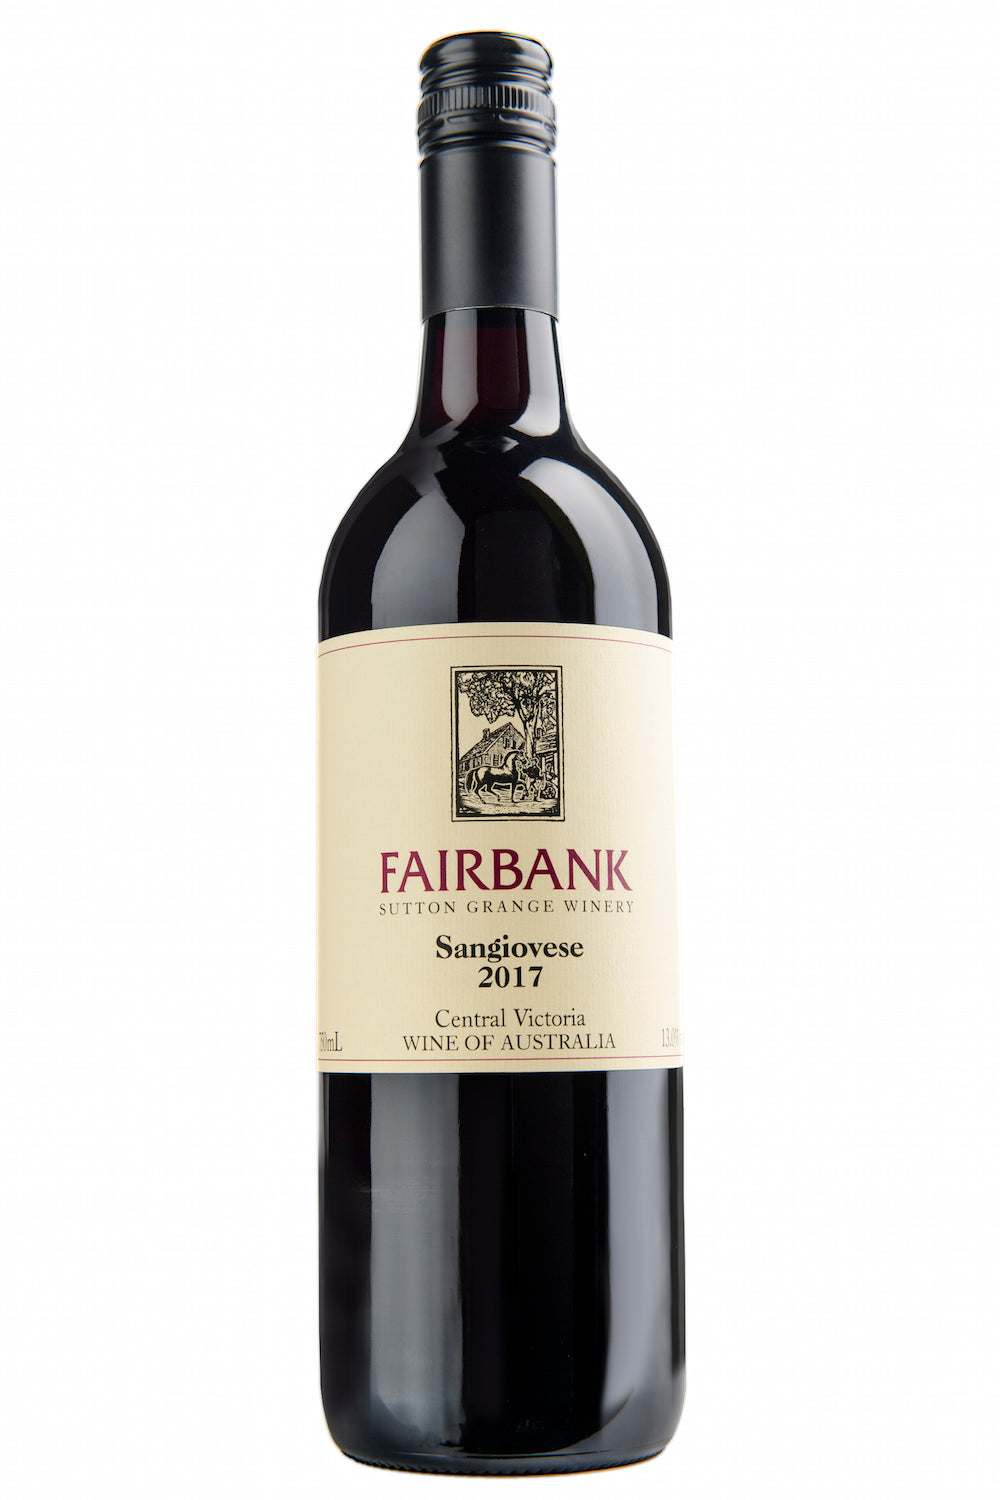 2017 Fairbank Sangiovese